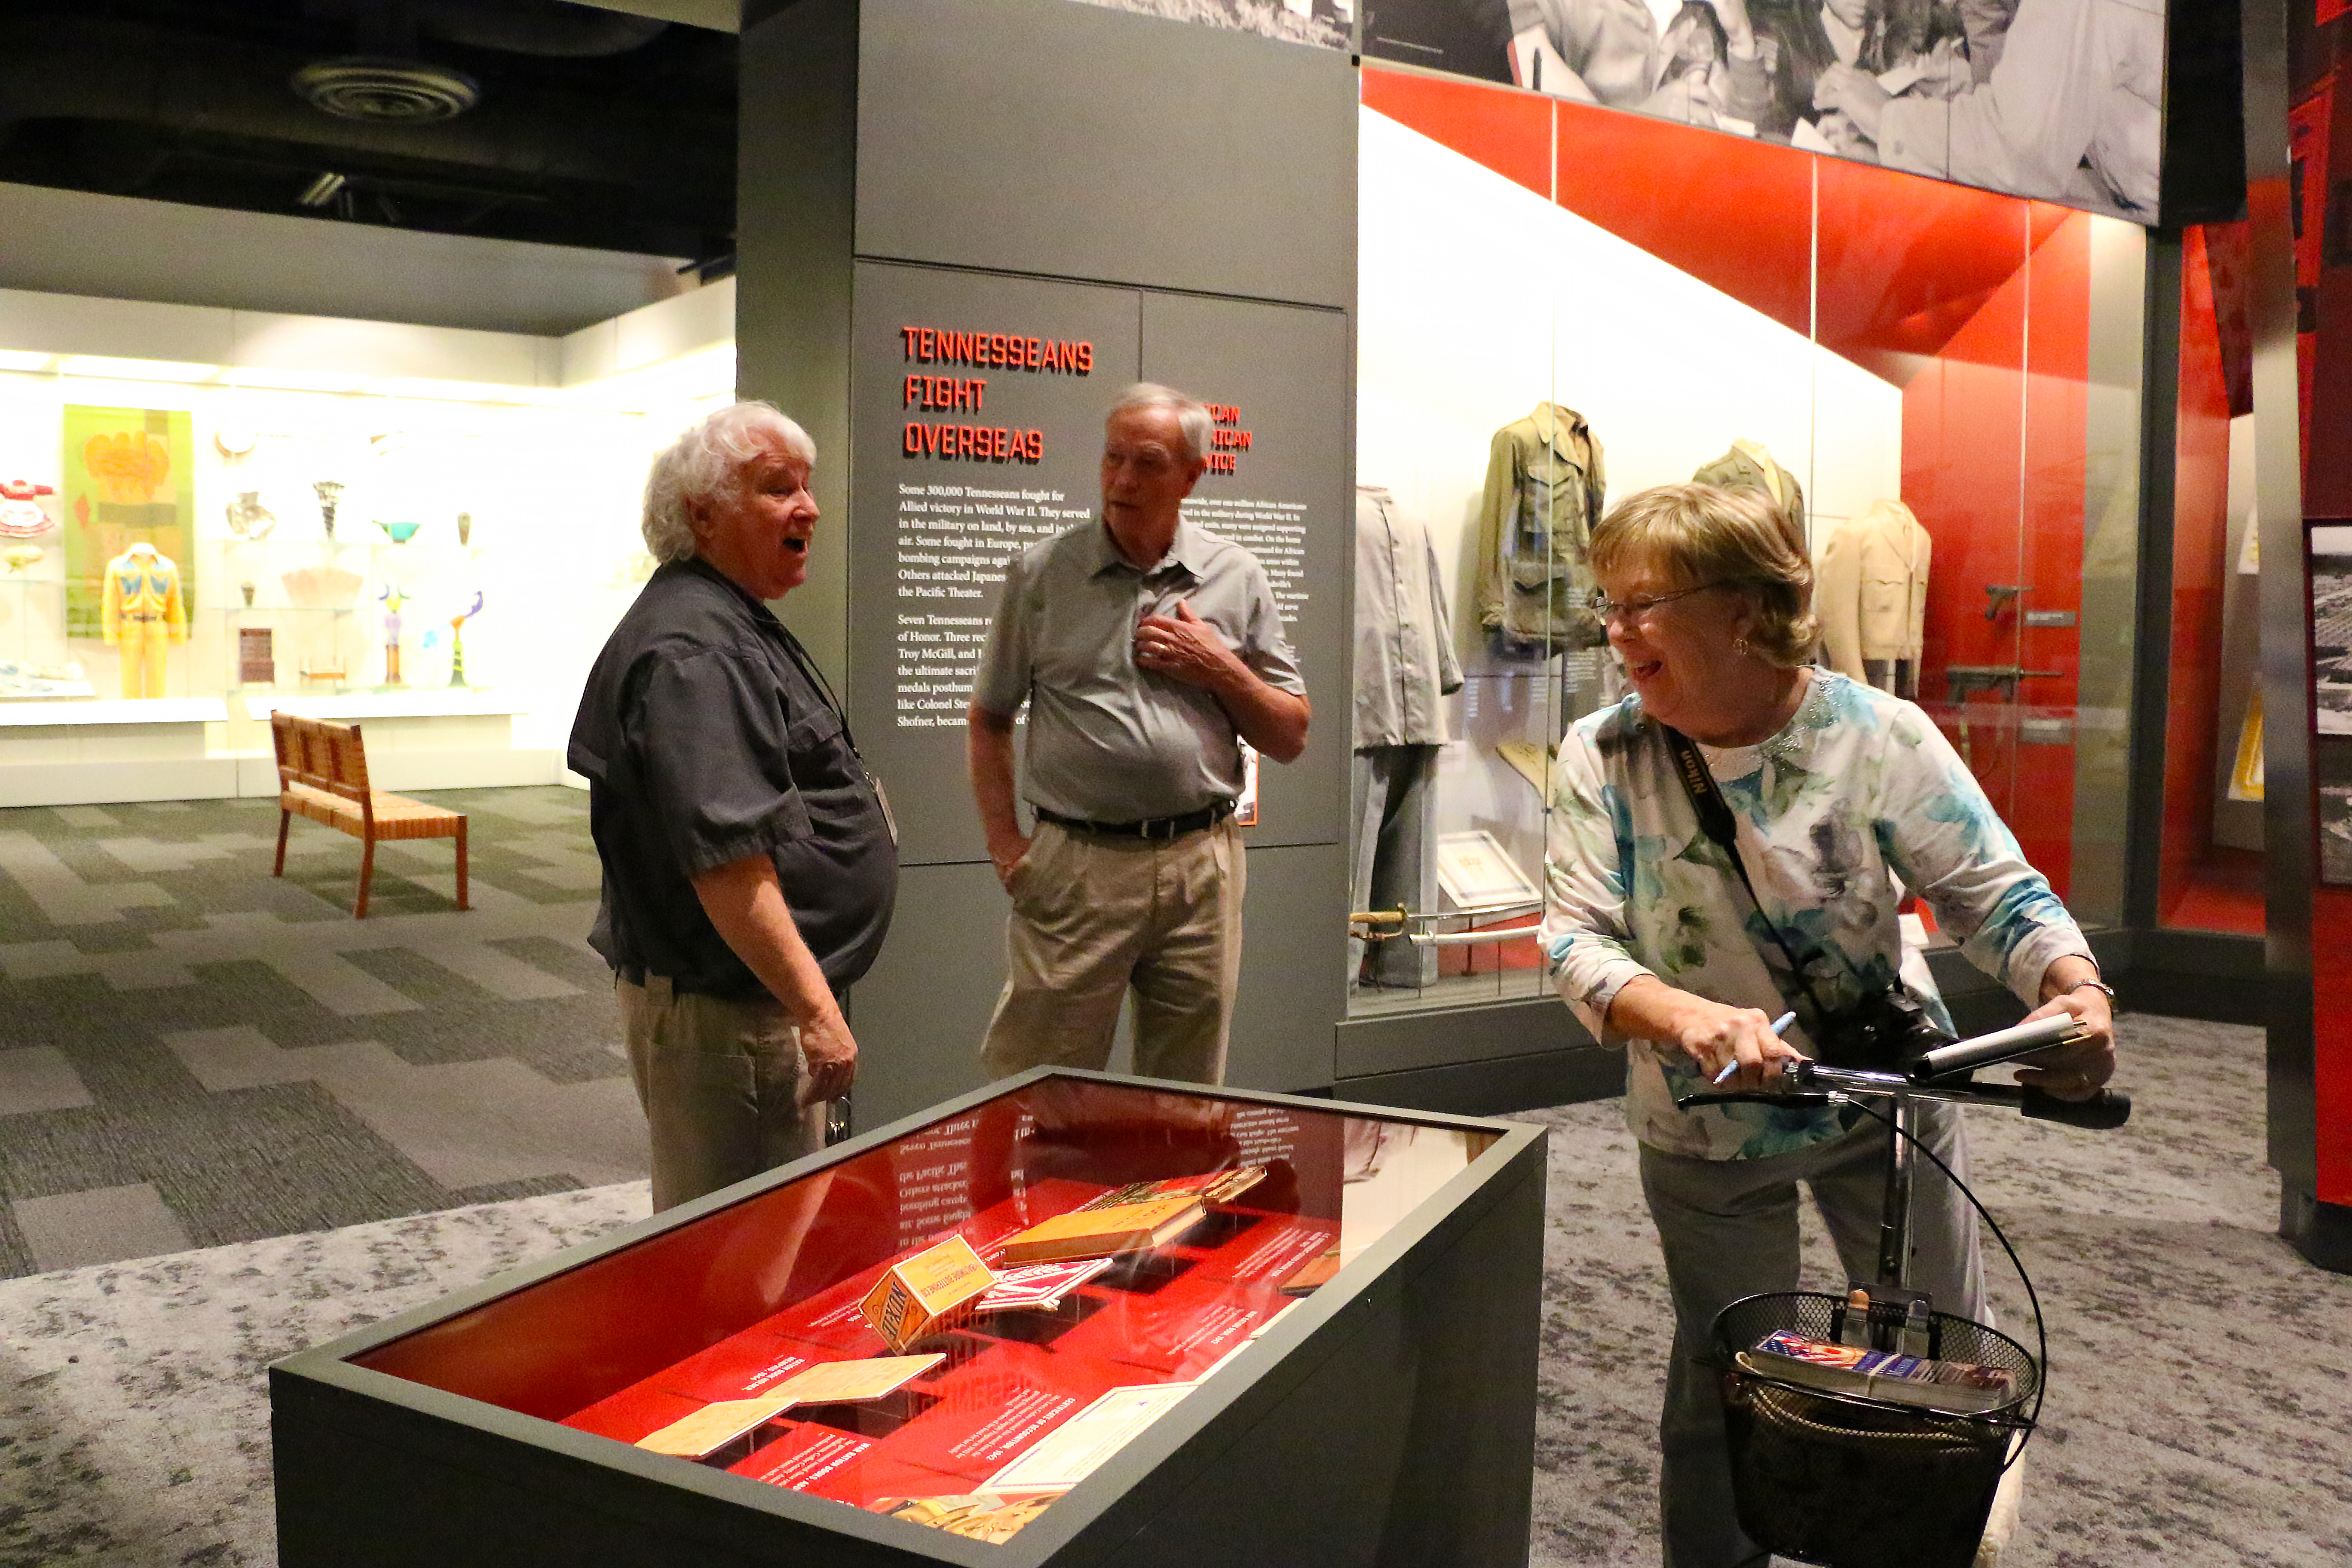 Nick Fielder gives a tour Ed Wescott's daughter, Emily, and his son-in-law, Don Hunnicut.